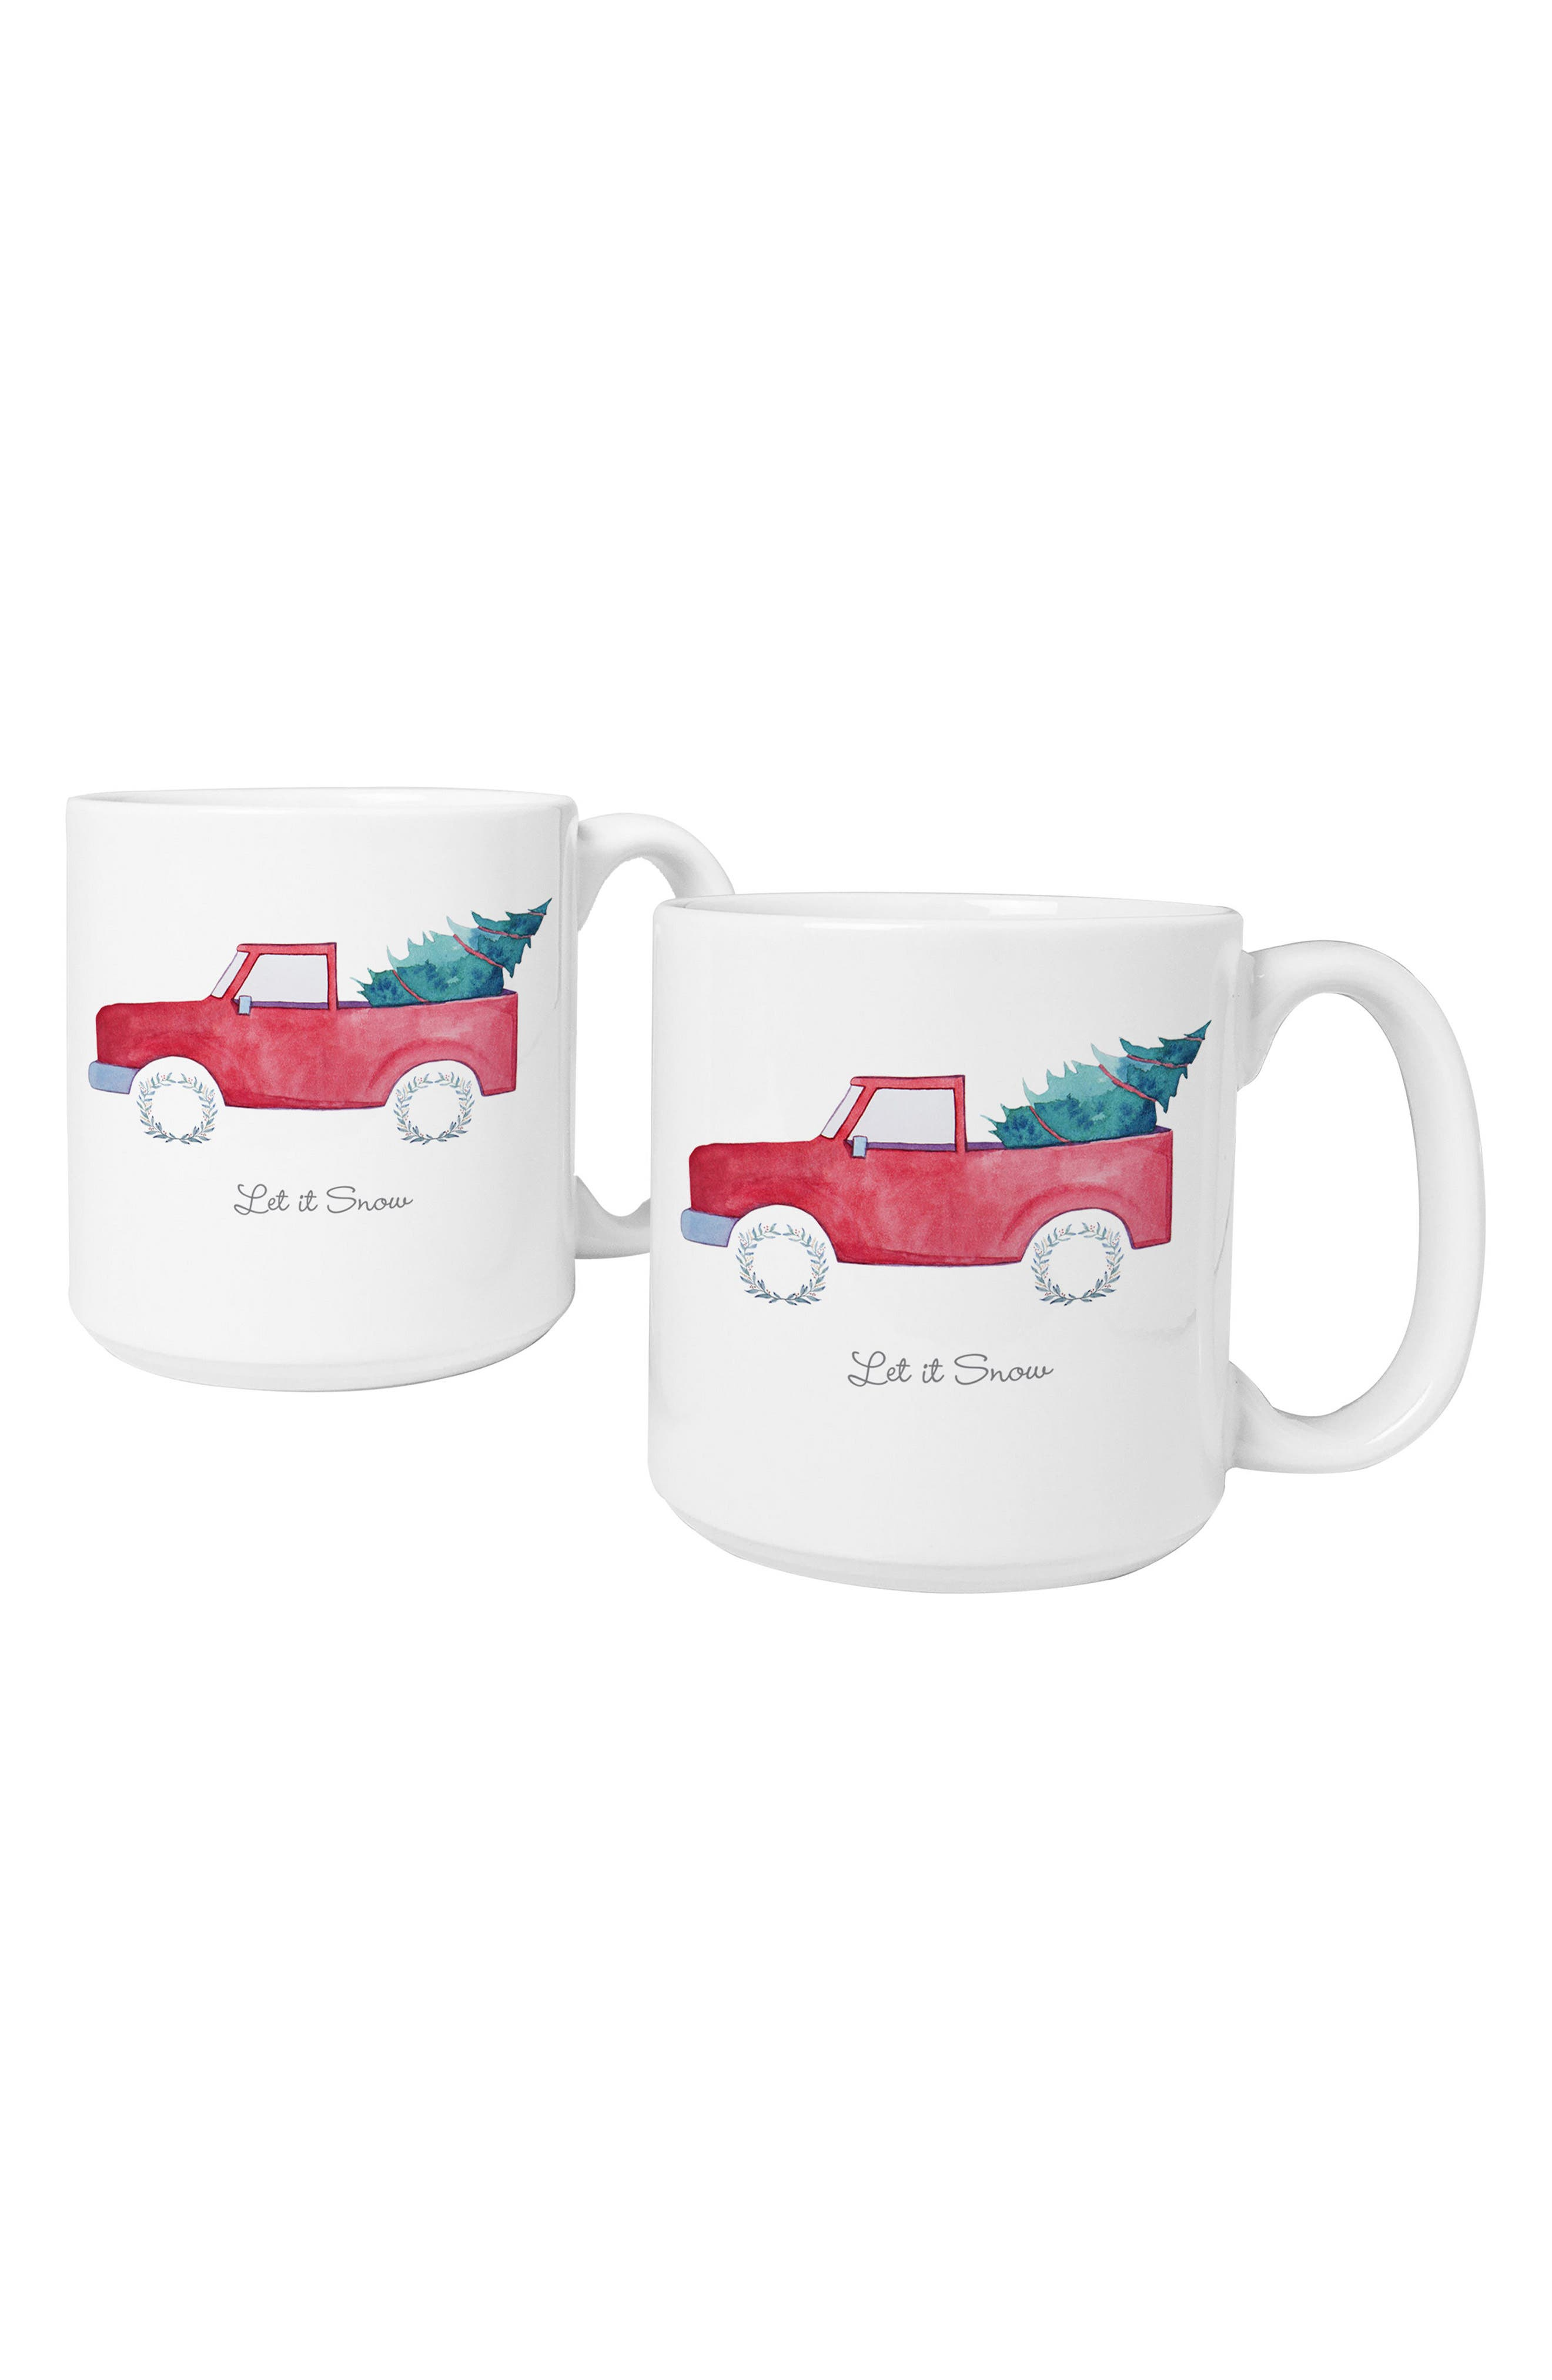 Cathy's Concepts Let It Snow Set of 2 Mugs